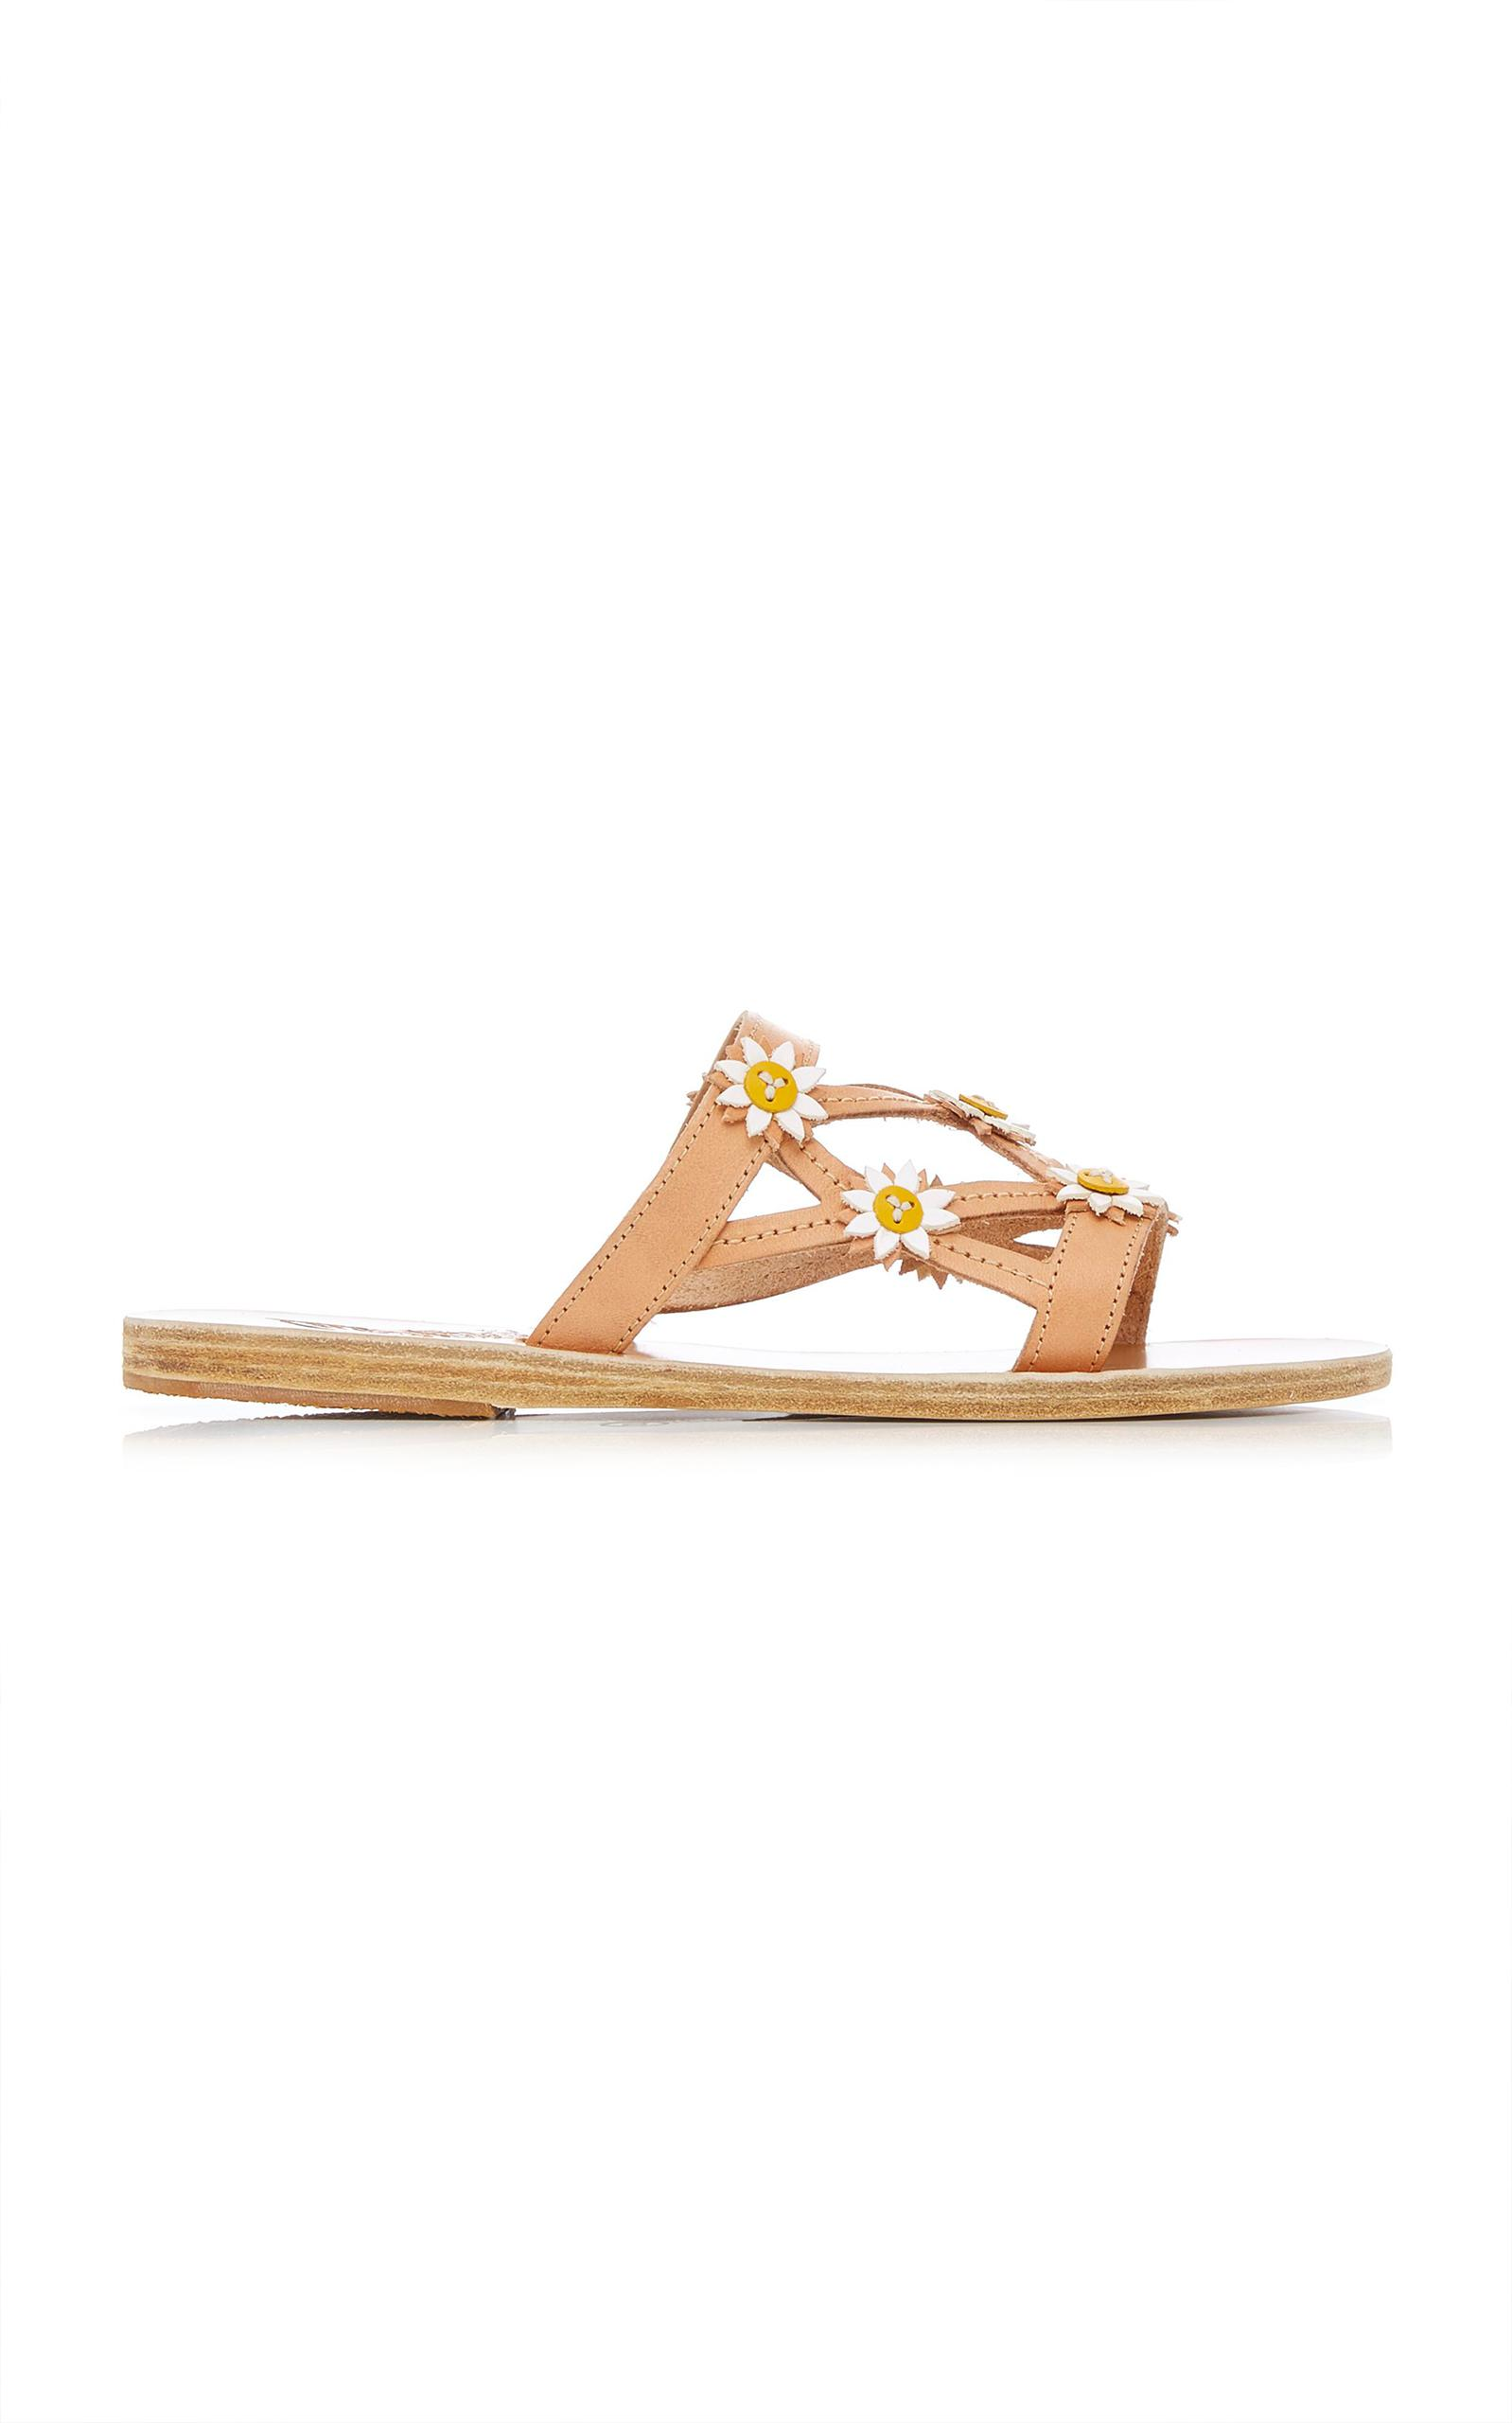 Peonia Floral-Embellished Leather Sandals Ancient Greek Sandals 7TmIIWqB